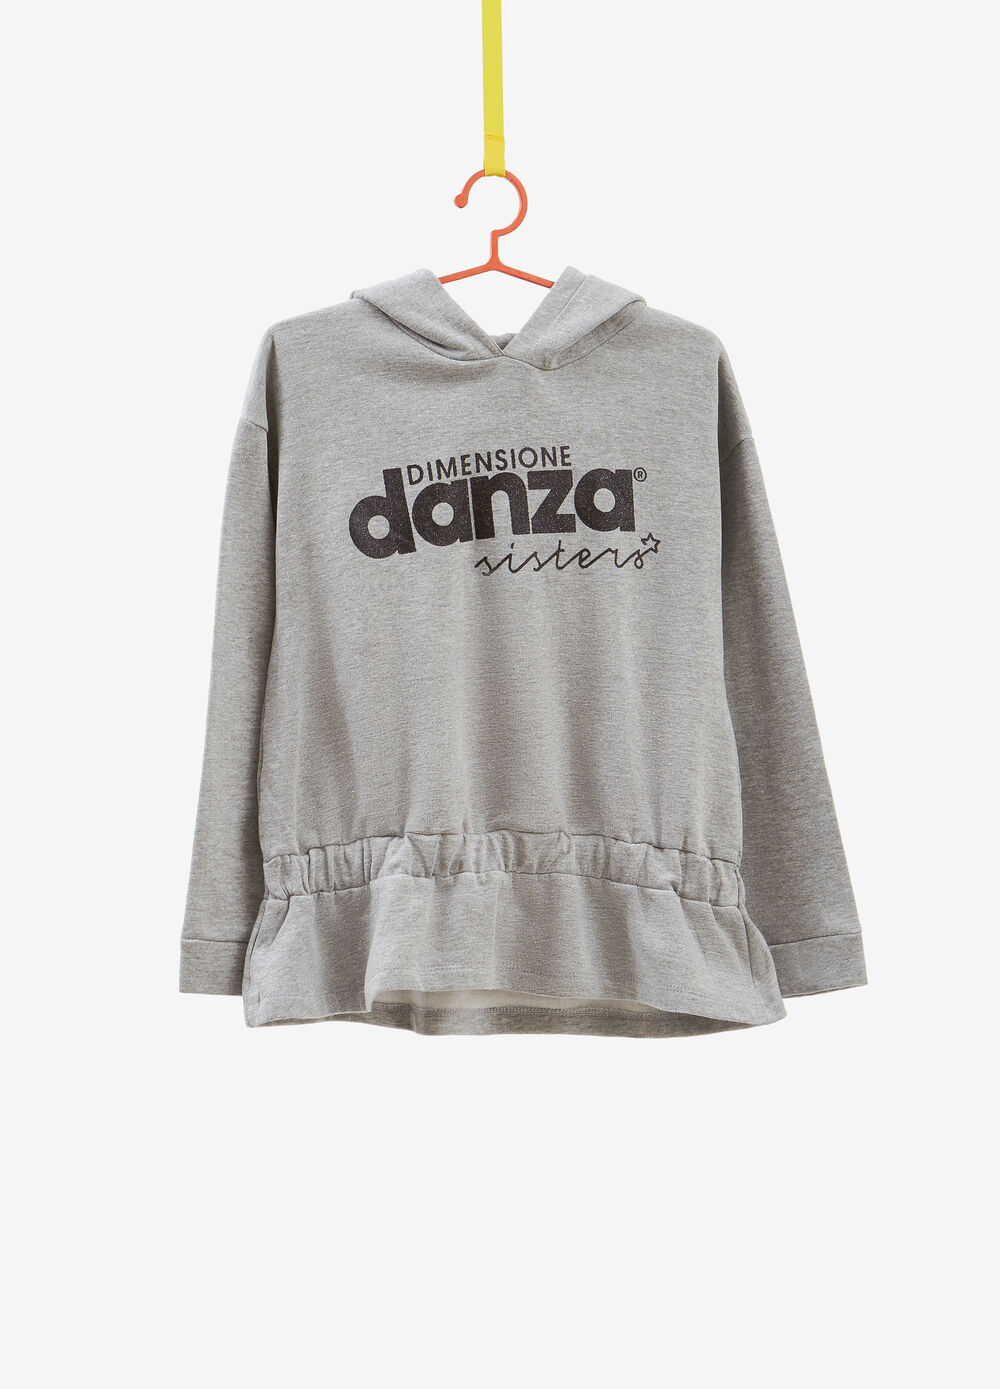 Dimensione Danza cotton sweatshirt with print